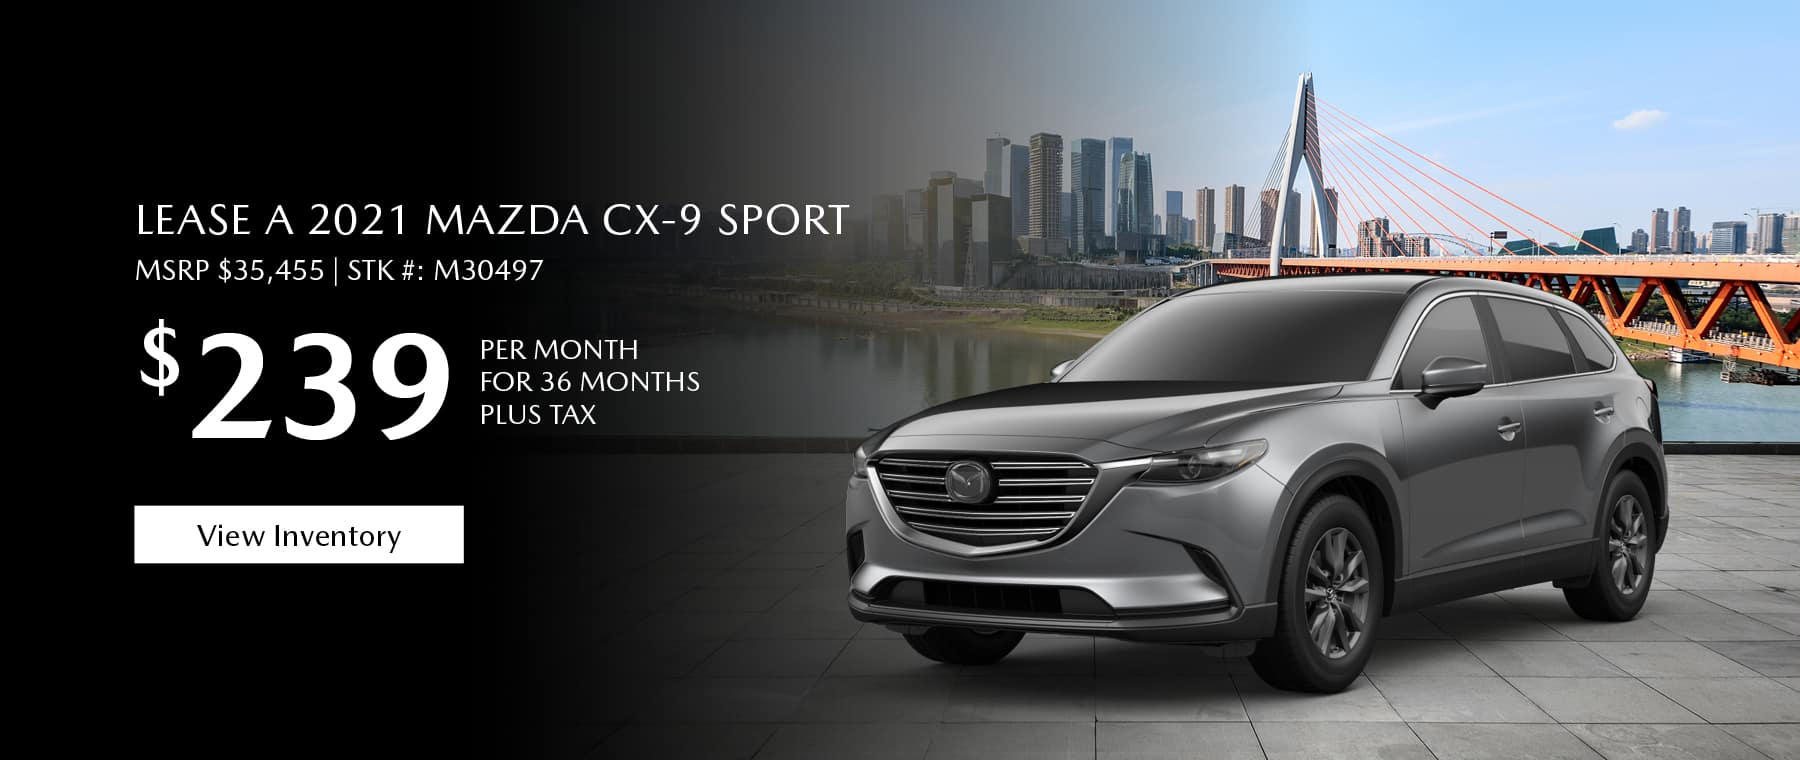 Lease the 2021 Mazda CX-9 for $239 per month, plus tax. View inventory for 36 months. Click or tap here to view our inventory.